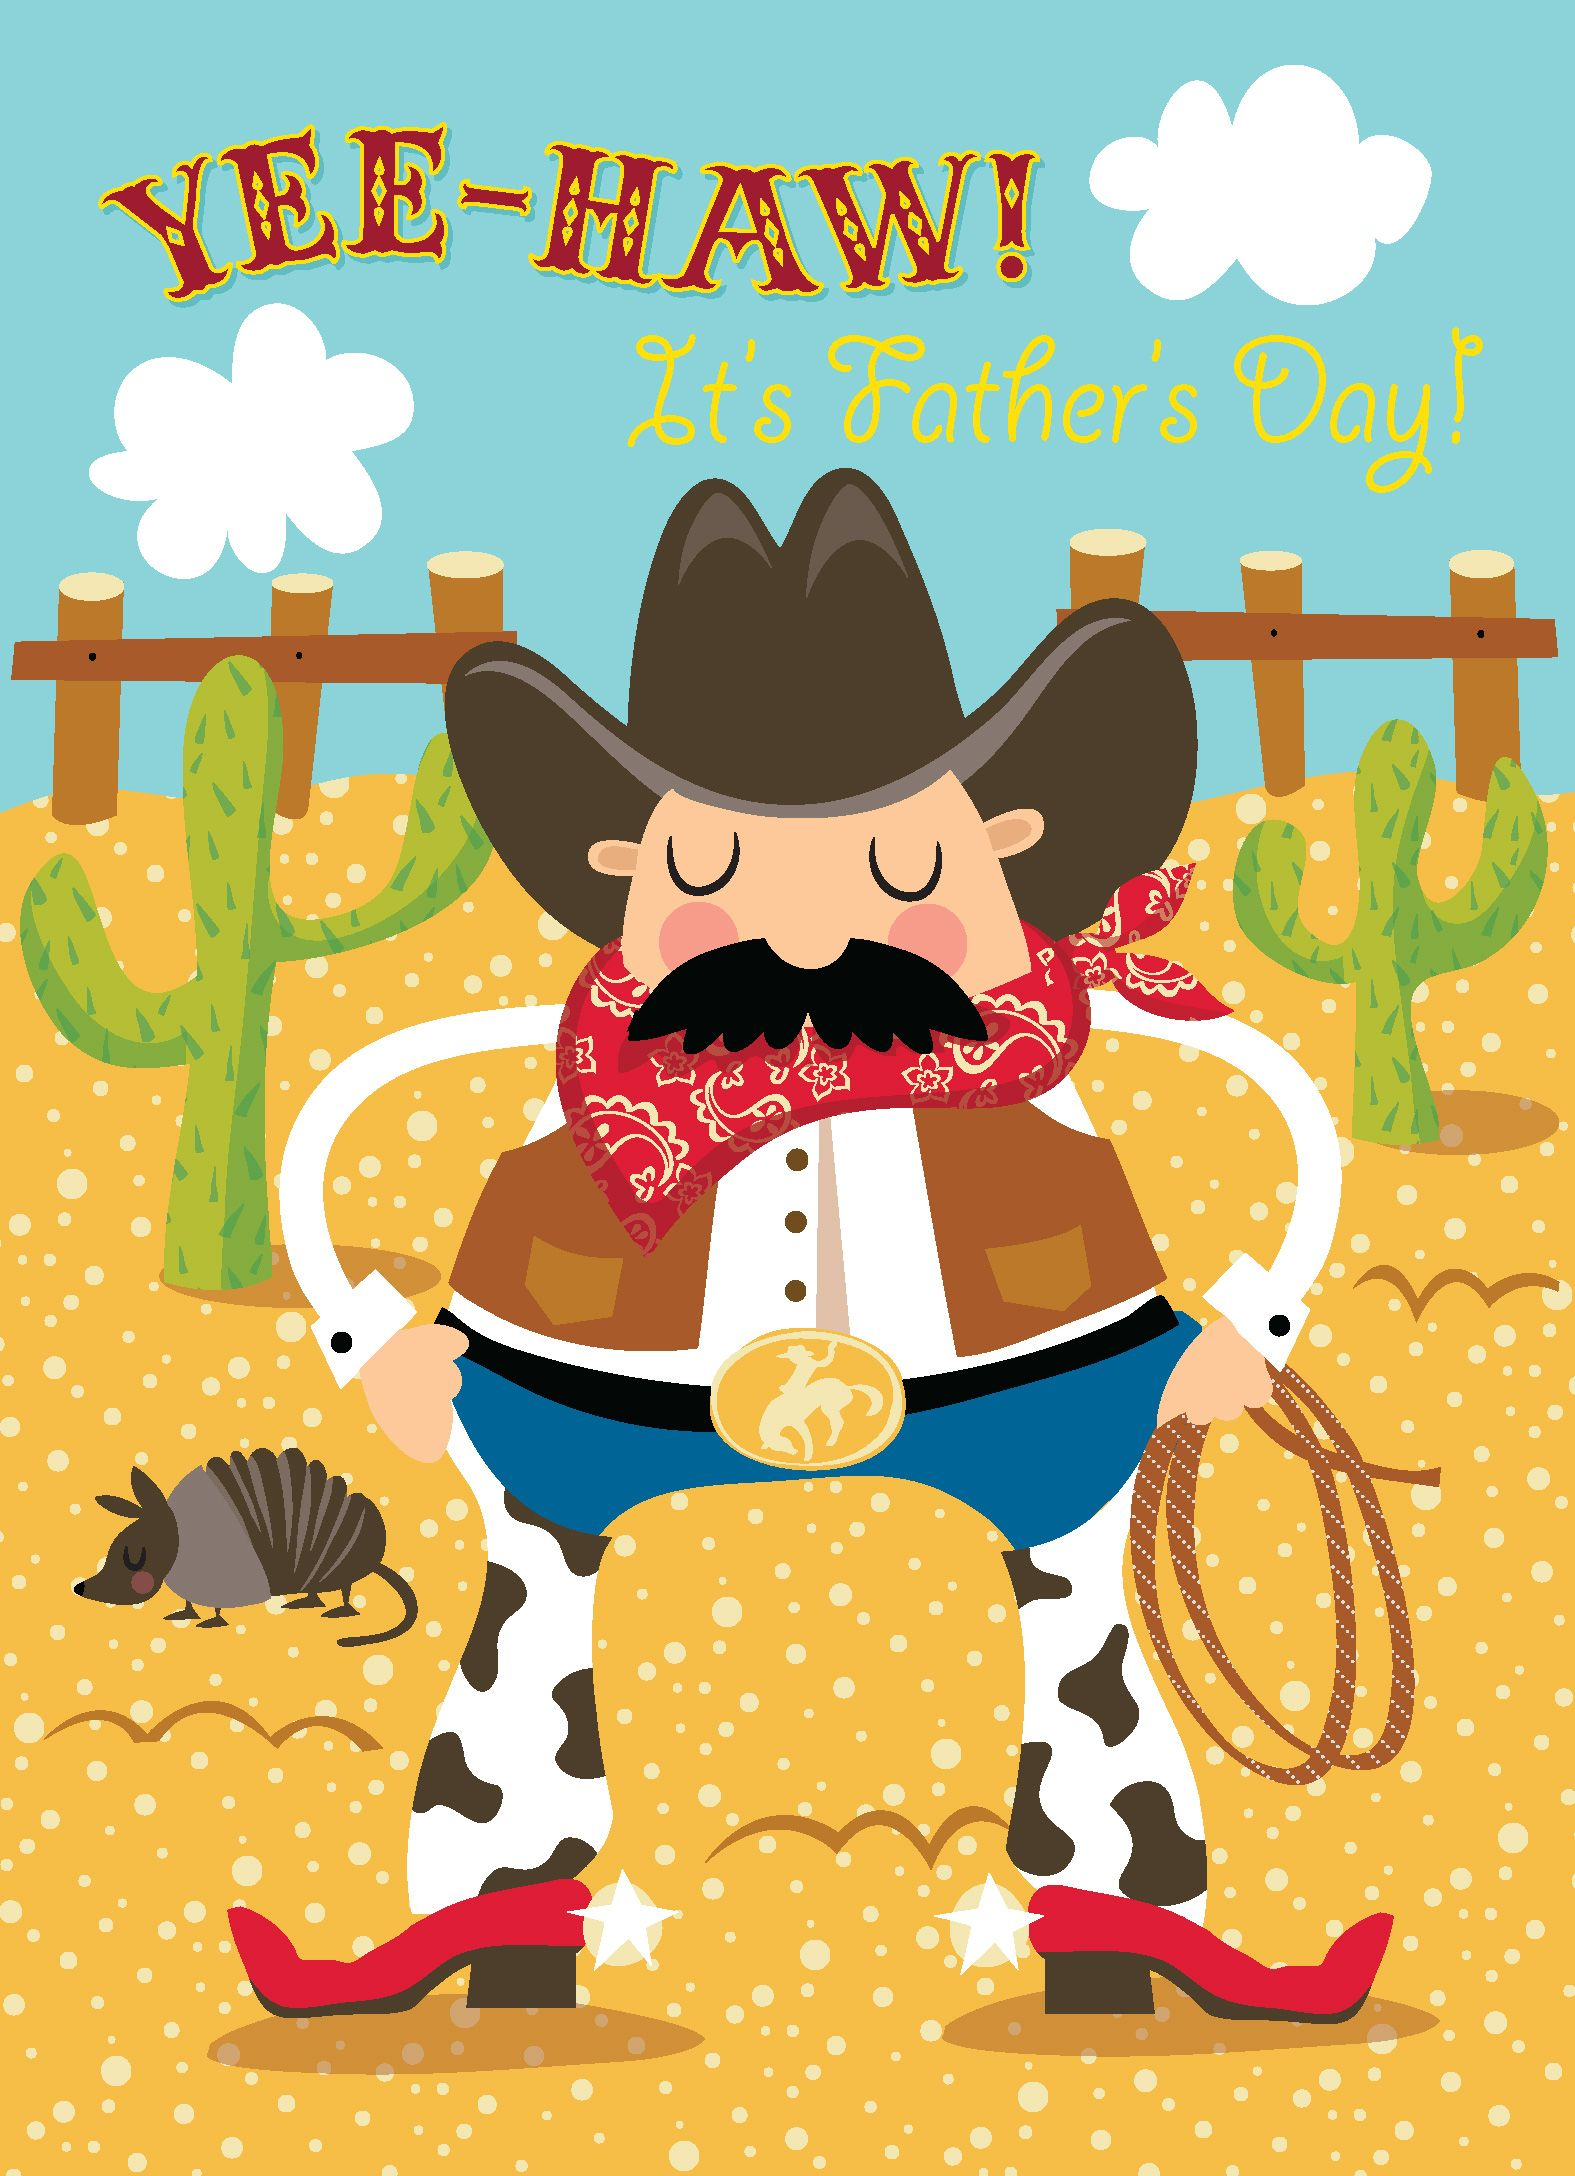 Yee haw happy fathers day an adorable cowboy greeting card to an adorable cowboy greeting card to daddy from child fathersdaygifts fathersdaycards greetingcardideas m4hsunfo